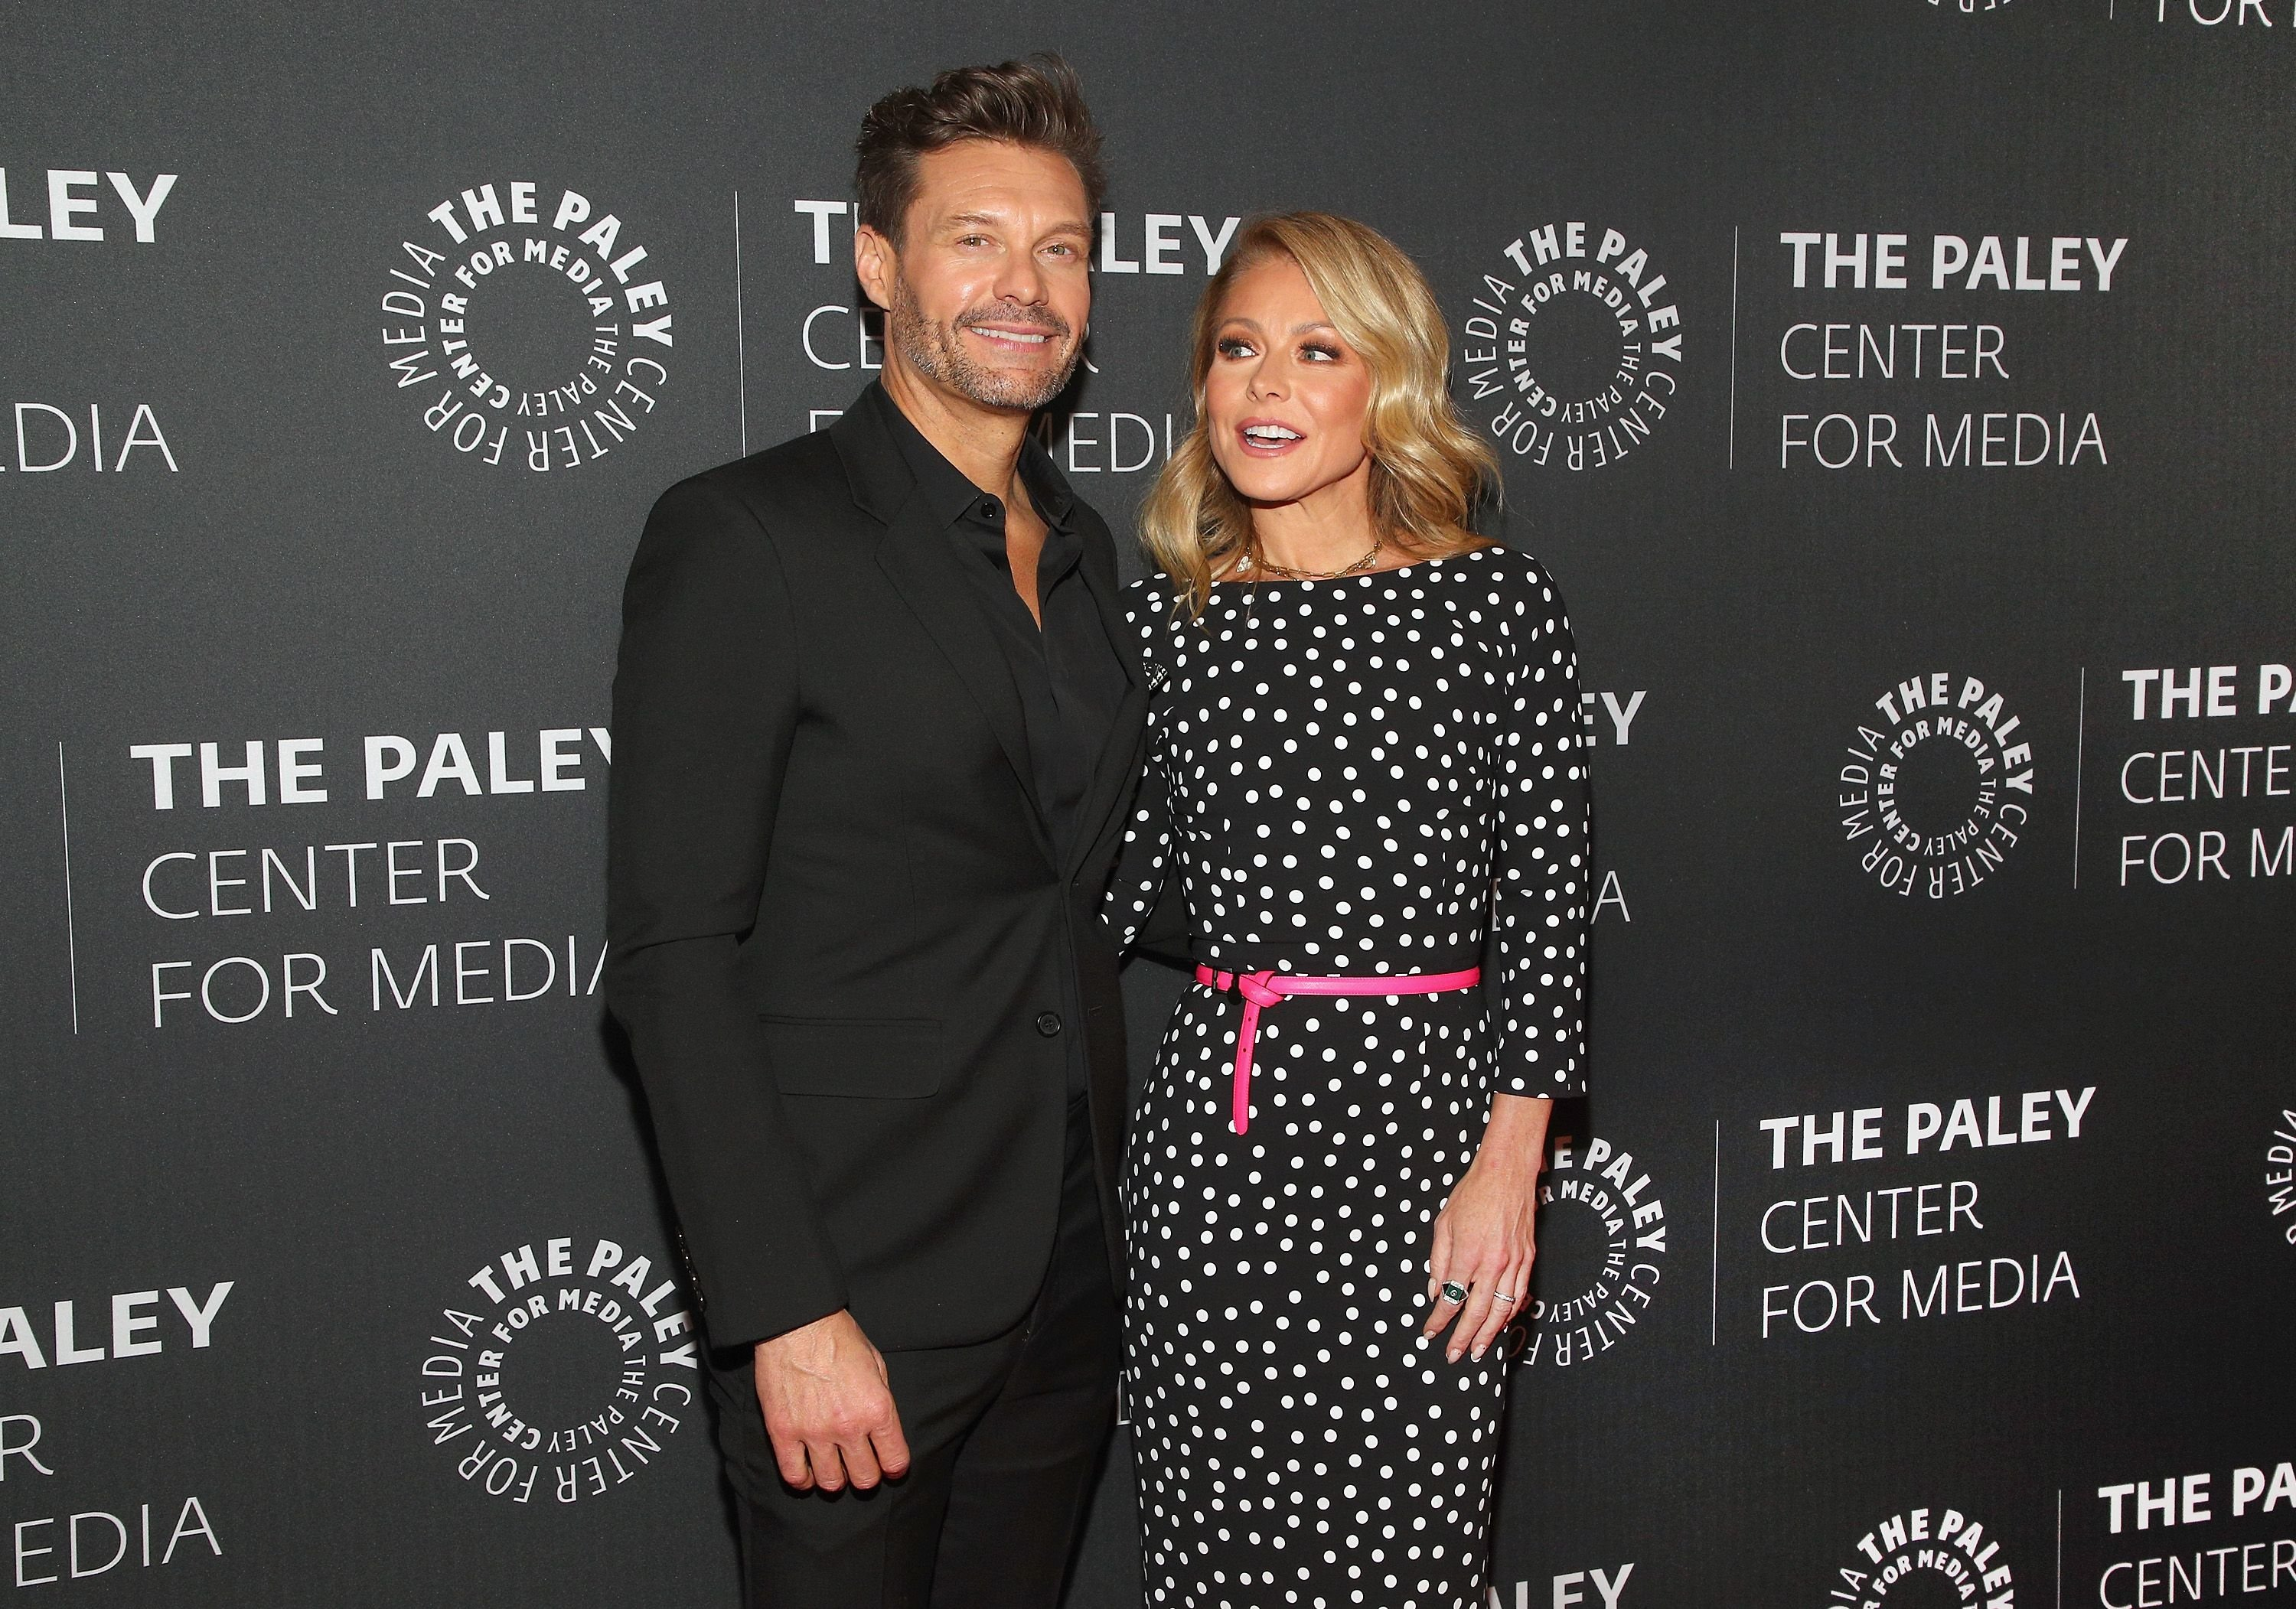 """Ryan Seacrest and Kelly Ripa attend The Paley Center For Media Presents: An Evening with """"Live with Kelly and Ryan"""" at Paley Center For Media on March 04, 2020 in New York City. 